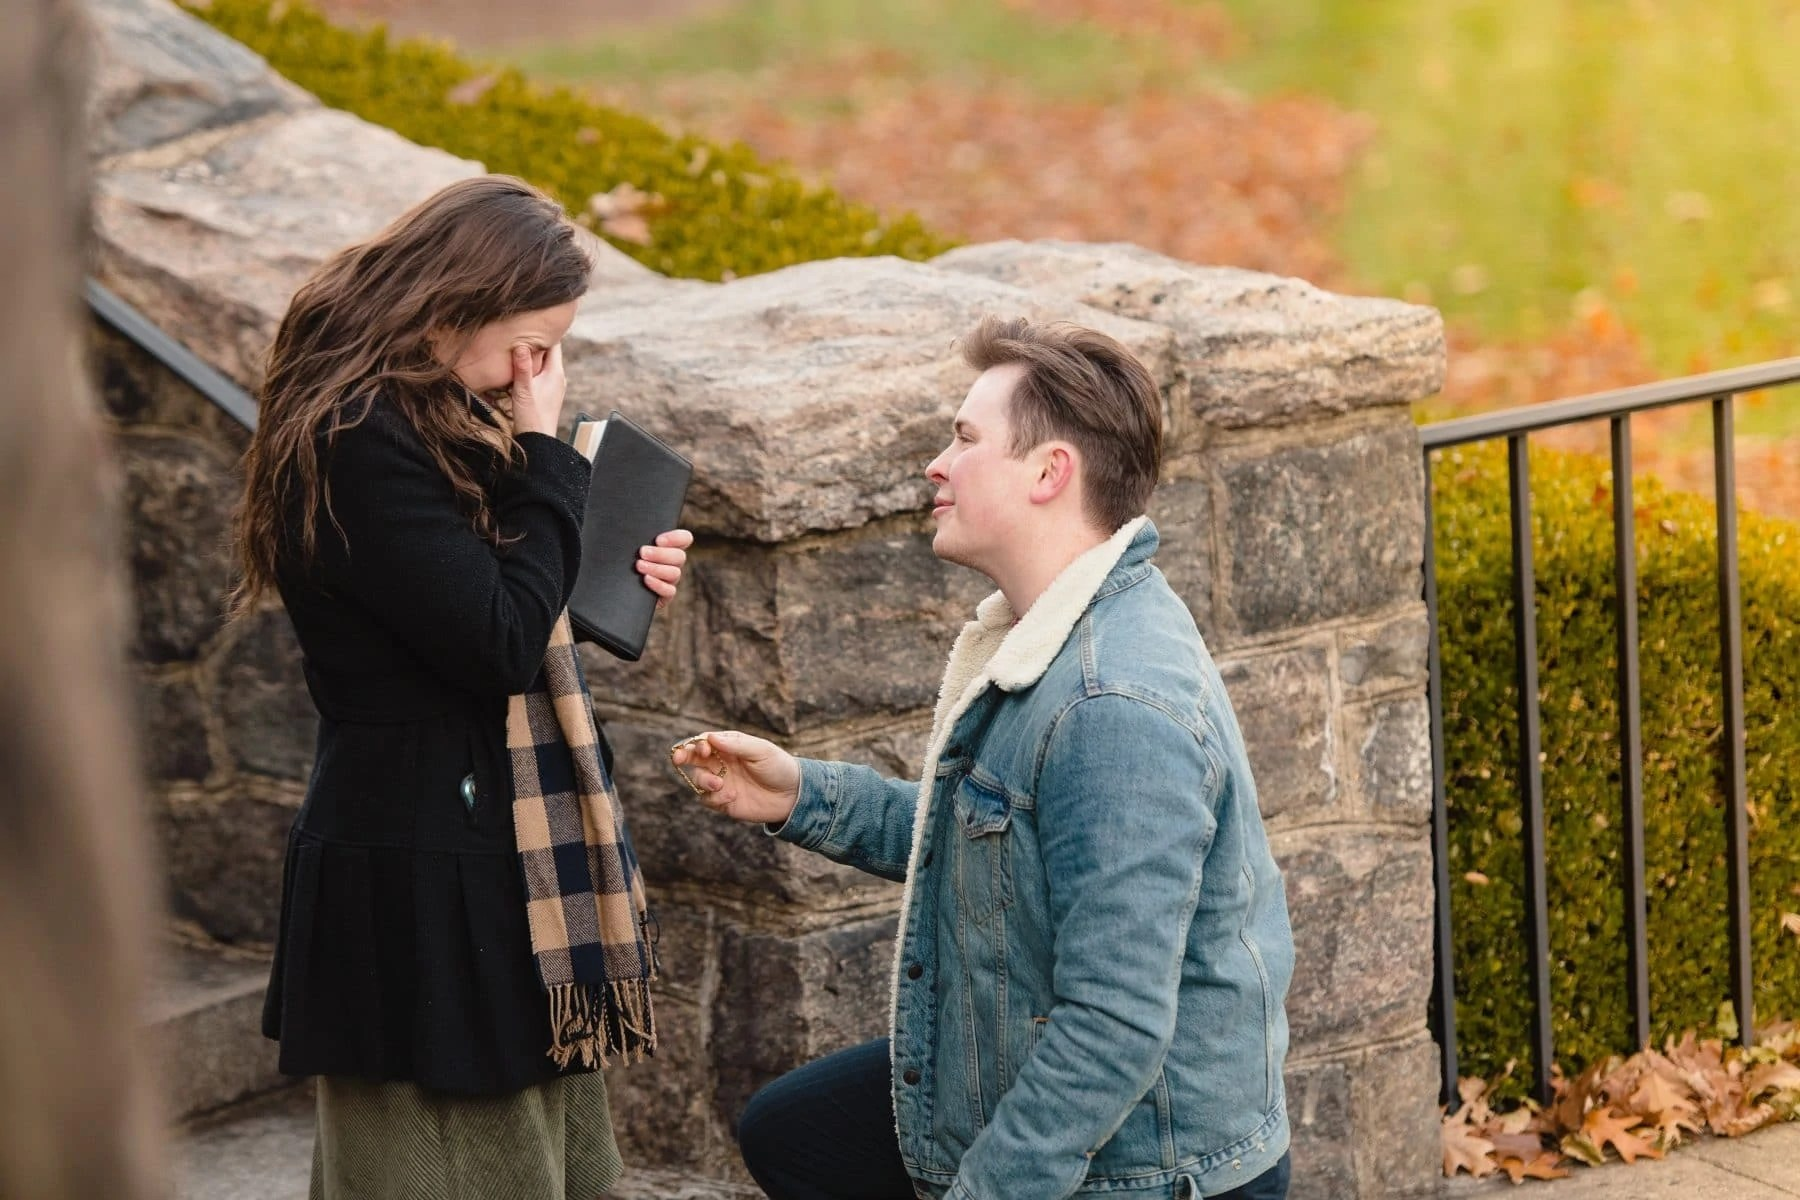 The girlfriend is crying when the boyfriend is on his knee proposing during New York Botanical Garden Surprise Proposal